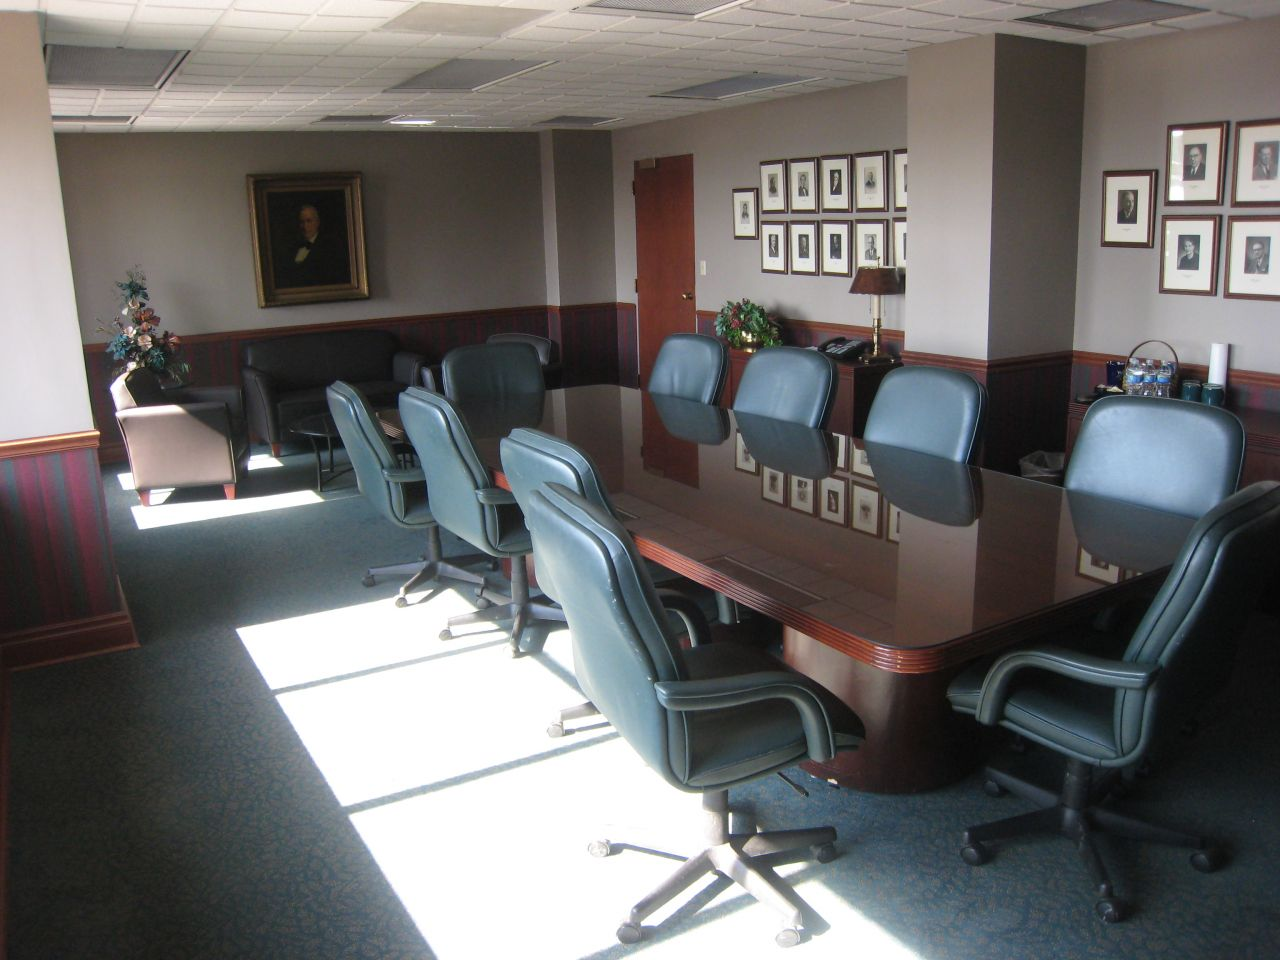 Main conference room with firm leaders (including Abraham Lincoln) pictured on wall